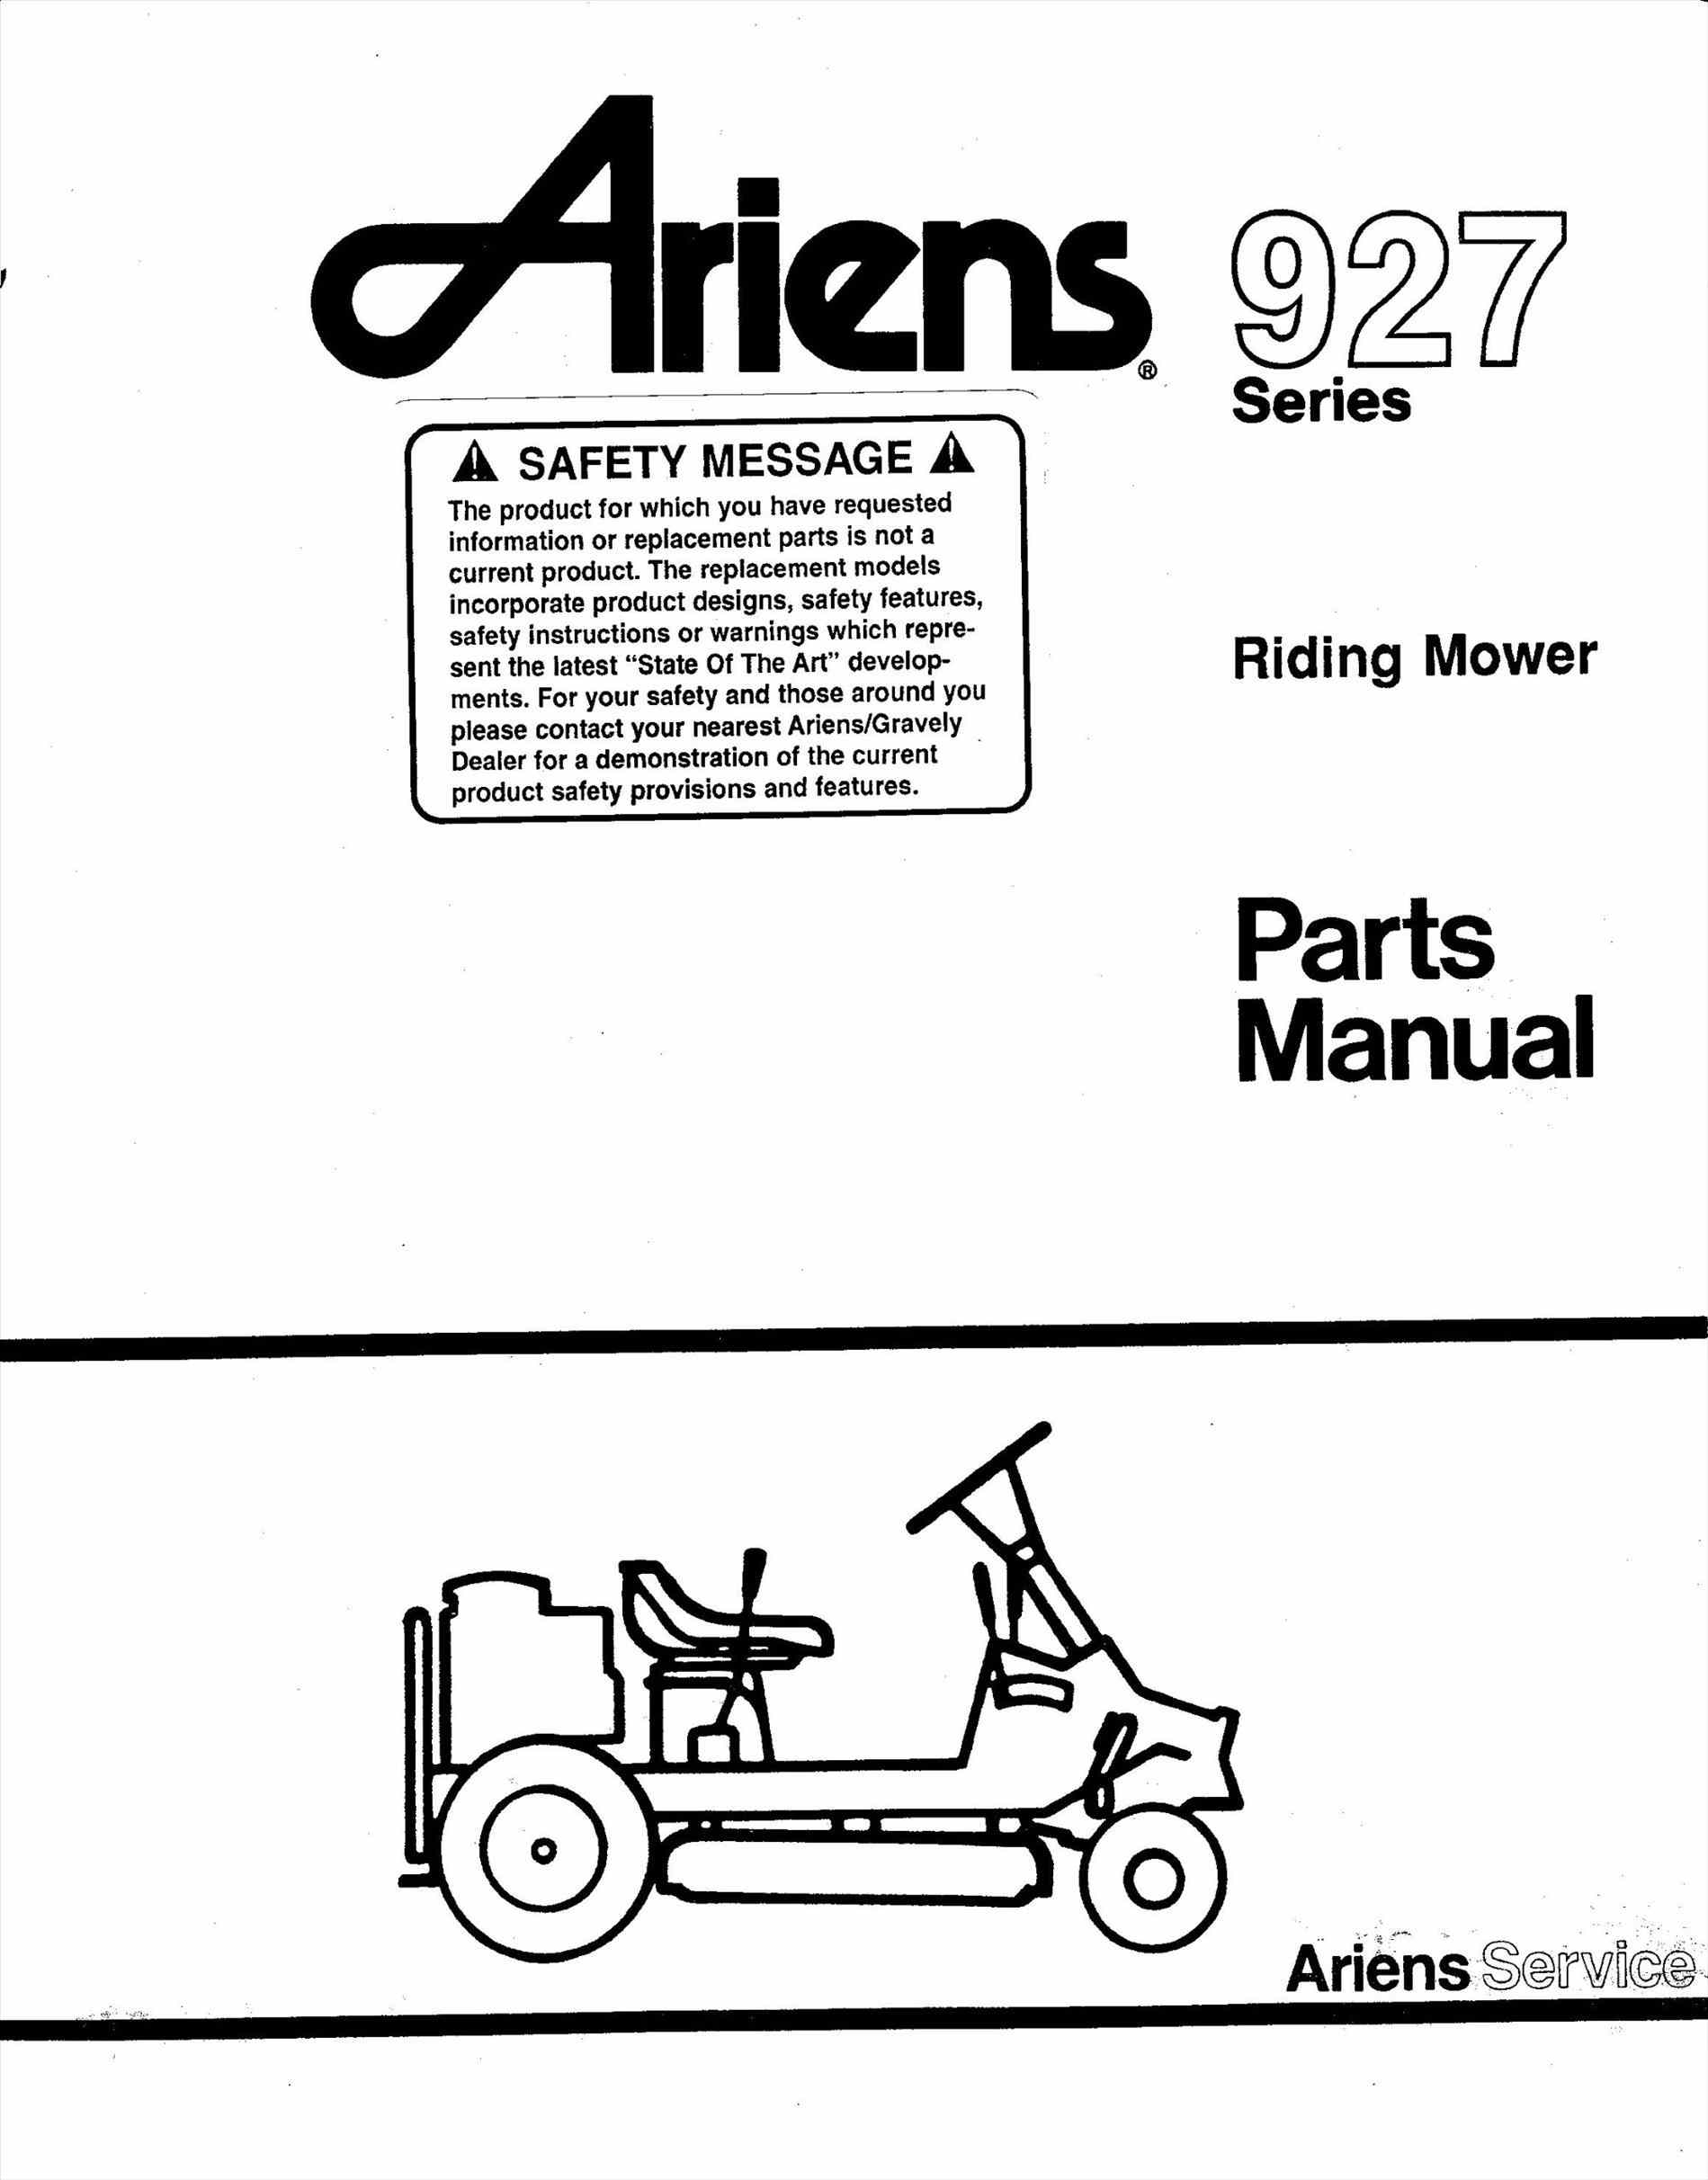 Ariens Lawn Mower Parts Diagram | Chentodayinfo within Cub Cadet Mower Deck Parts Diagram